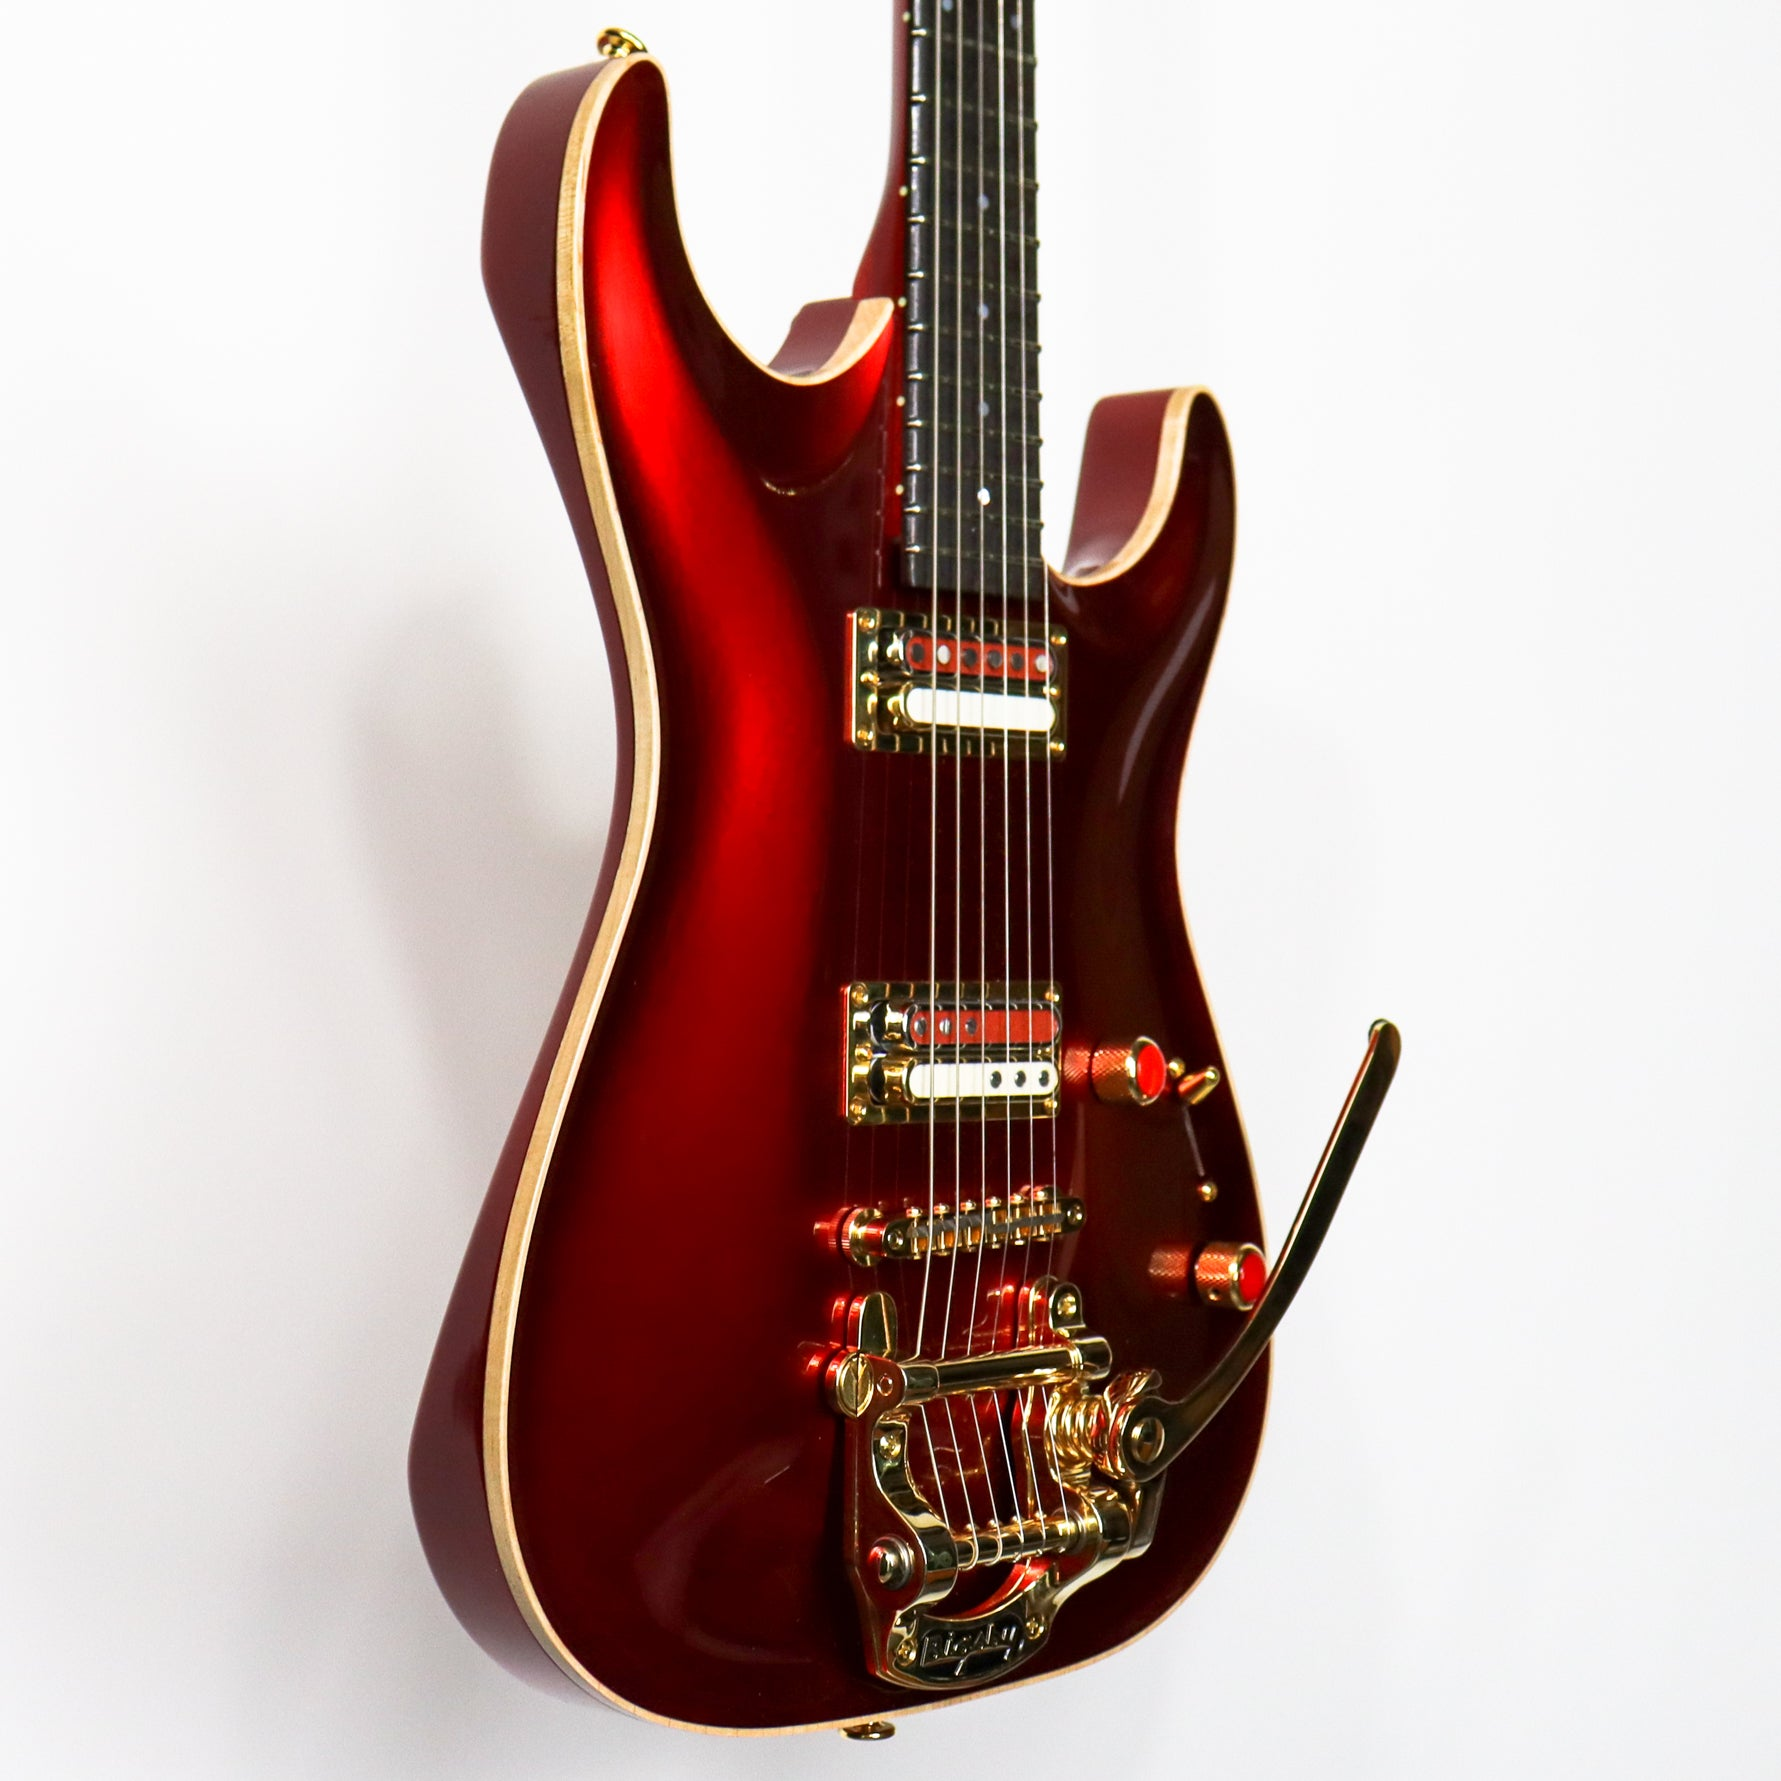 Pensa MK-D Candy Apple Red 0890